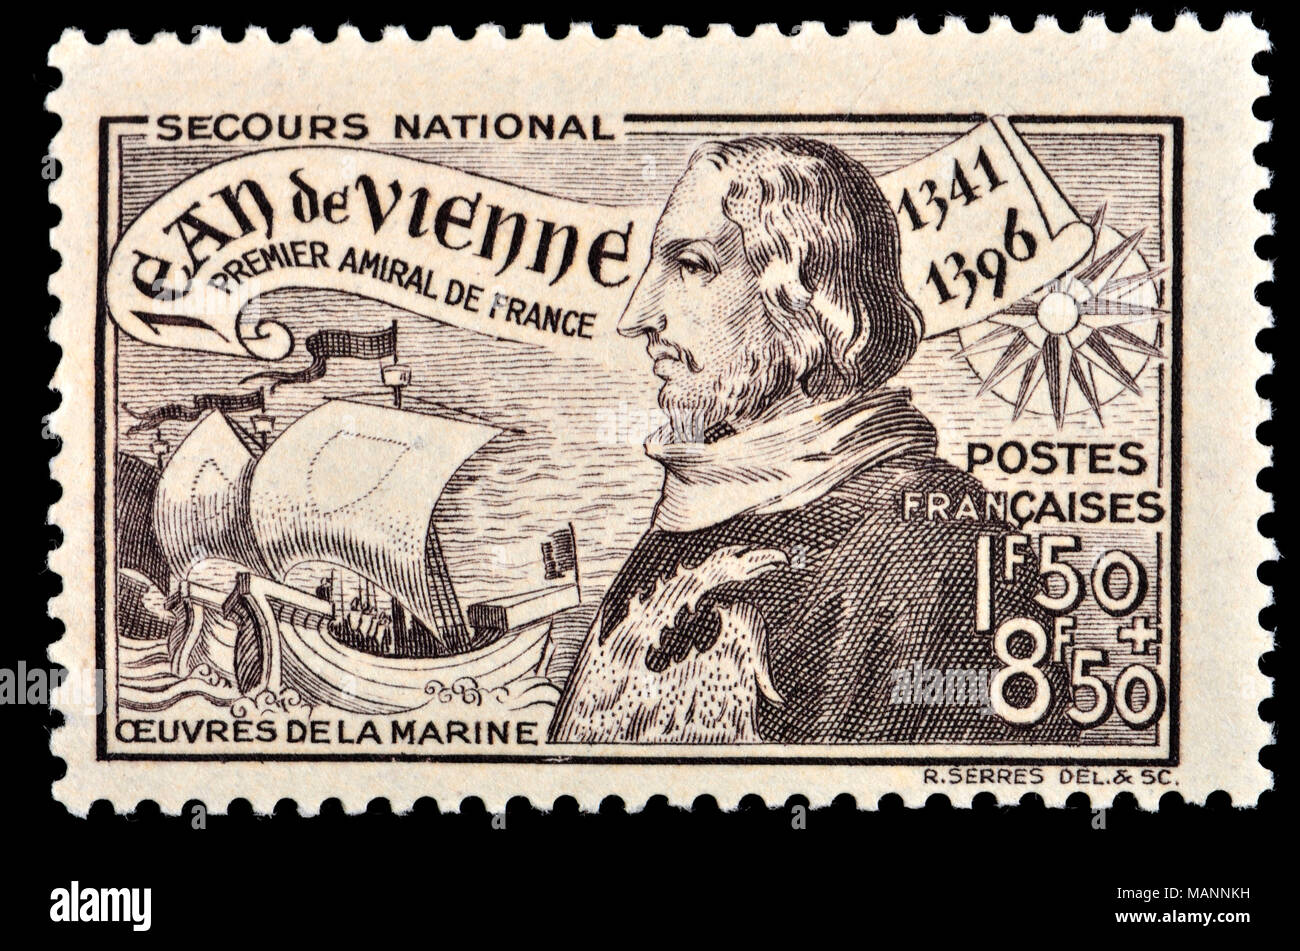 French postage stamp (1941) : Jean de Vienne (1341 – 1396) French knight, general and Admiral of France during the Hundred Years' War. - Stock Image